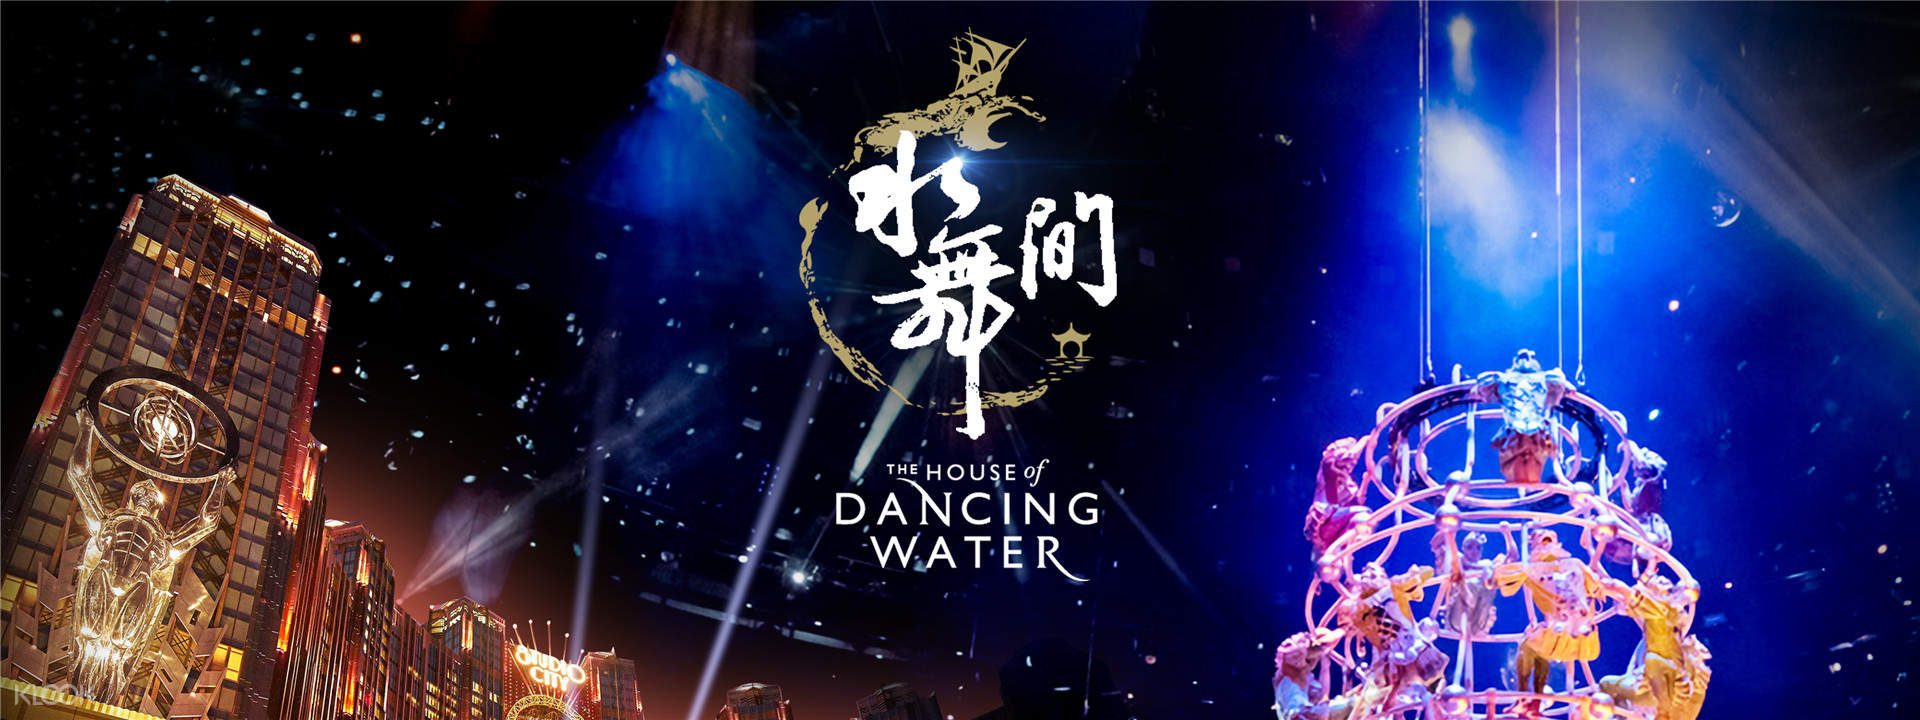 The House of Dancing Water""